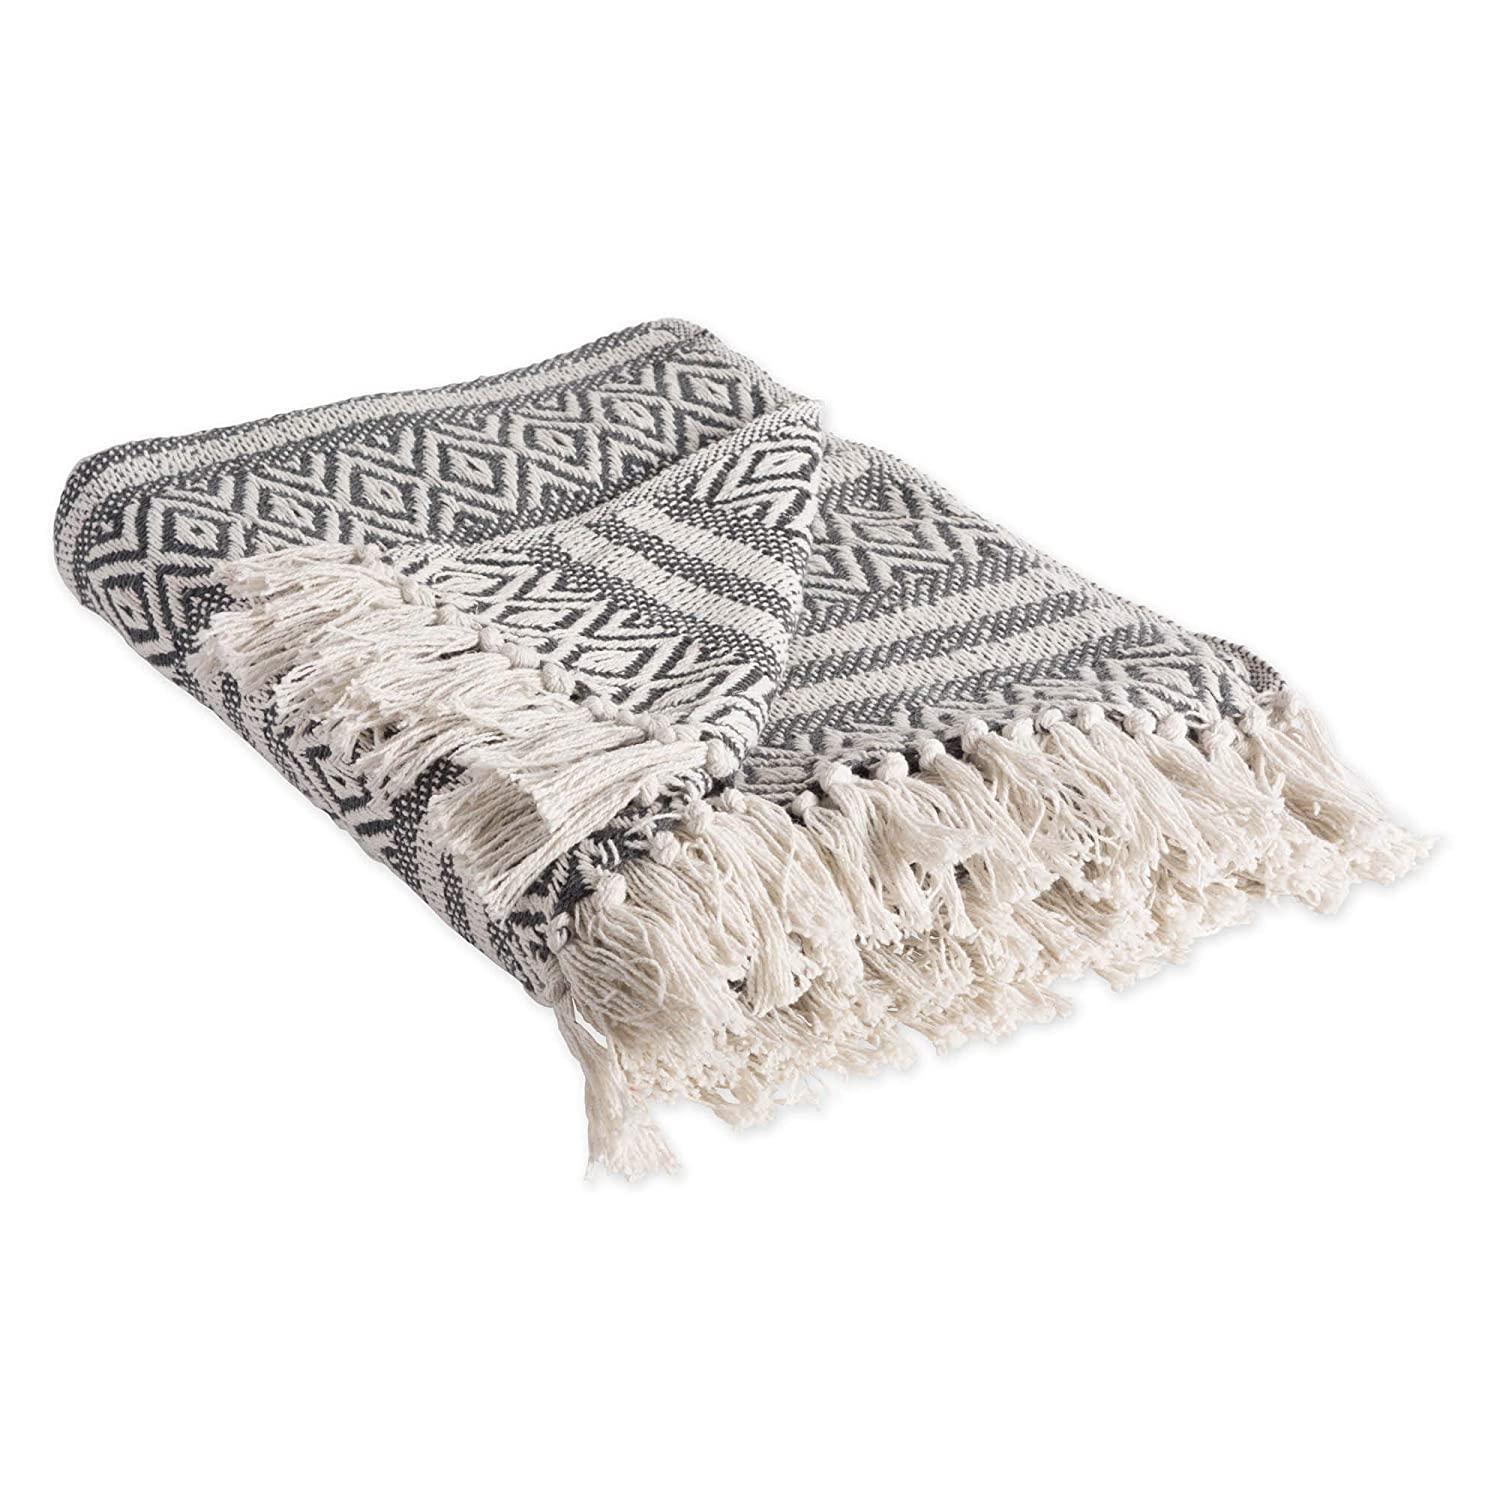 "DII Rustic Farmhouse Cotton Adobe Stripe Blanket Throw with Fringe For Chair, Couch, Picnic, Camping, Beach, & Everyday Use , 50 x 60"" - Adobe Stripe Mineral"